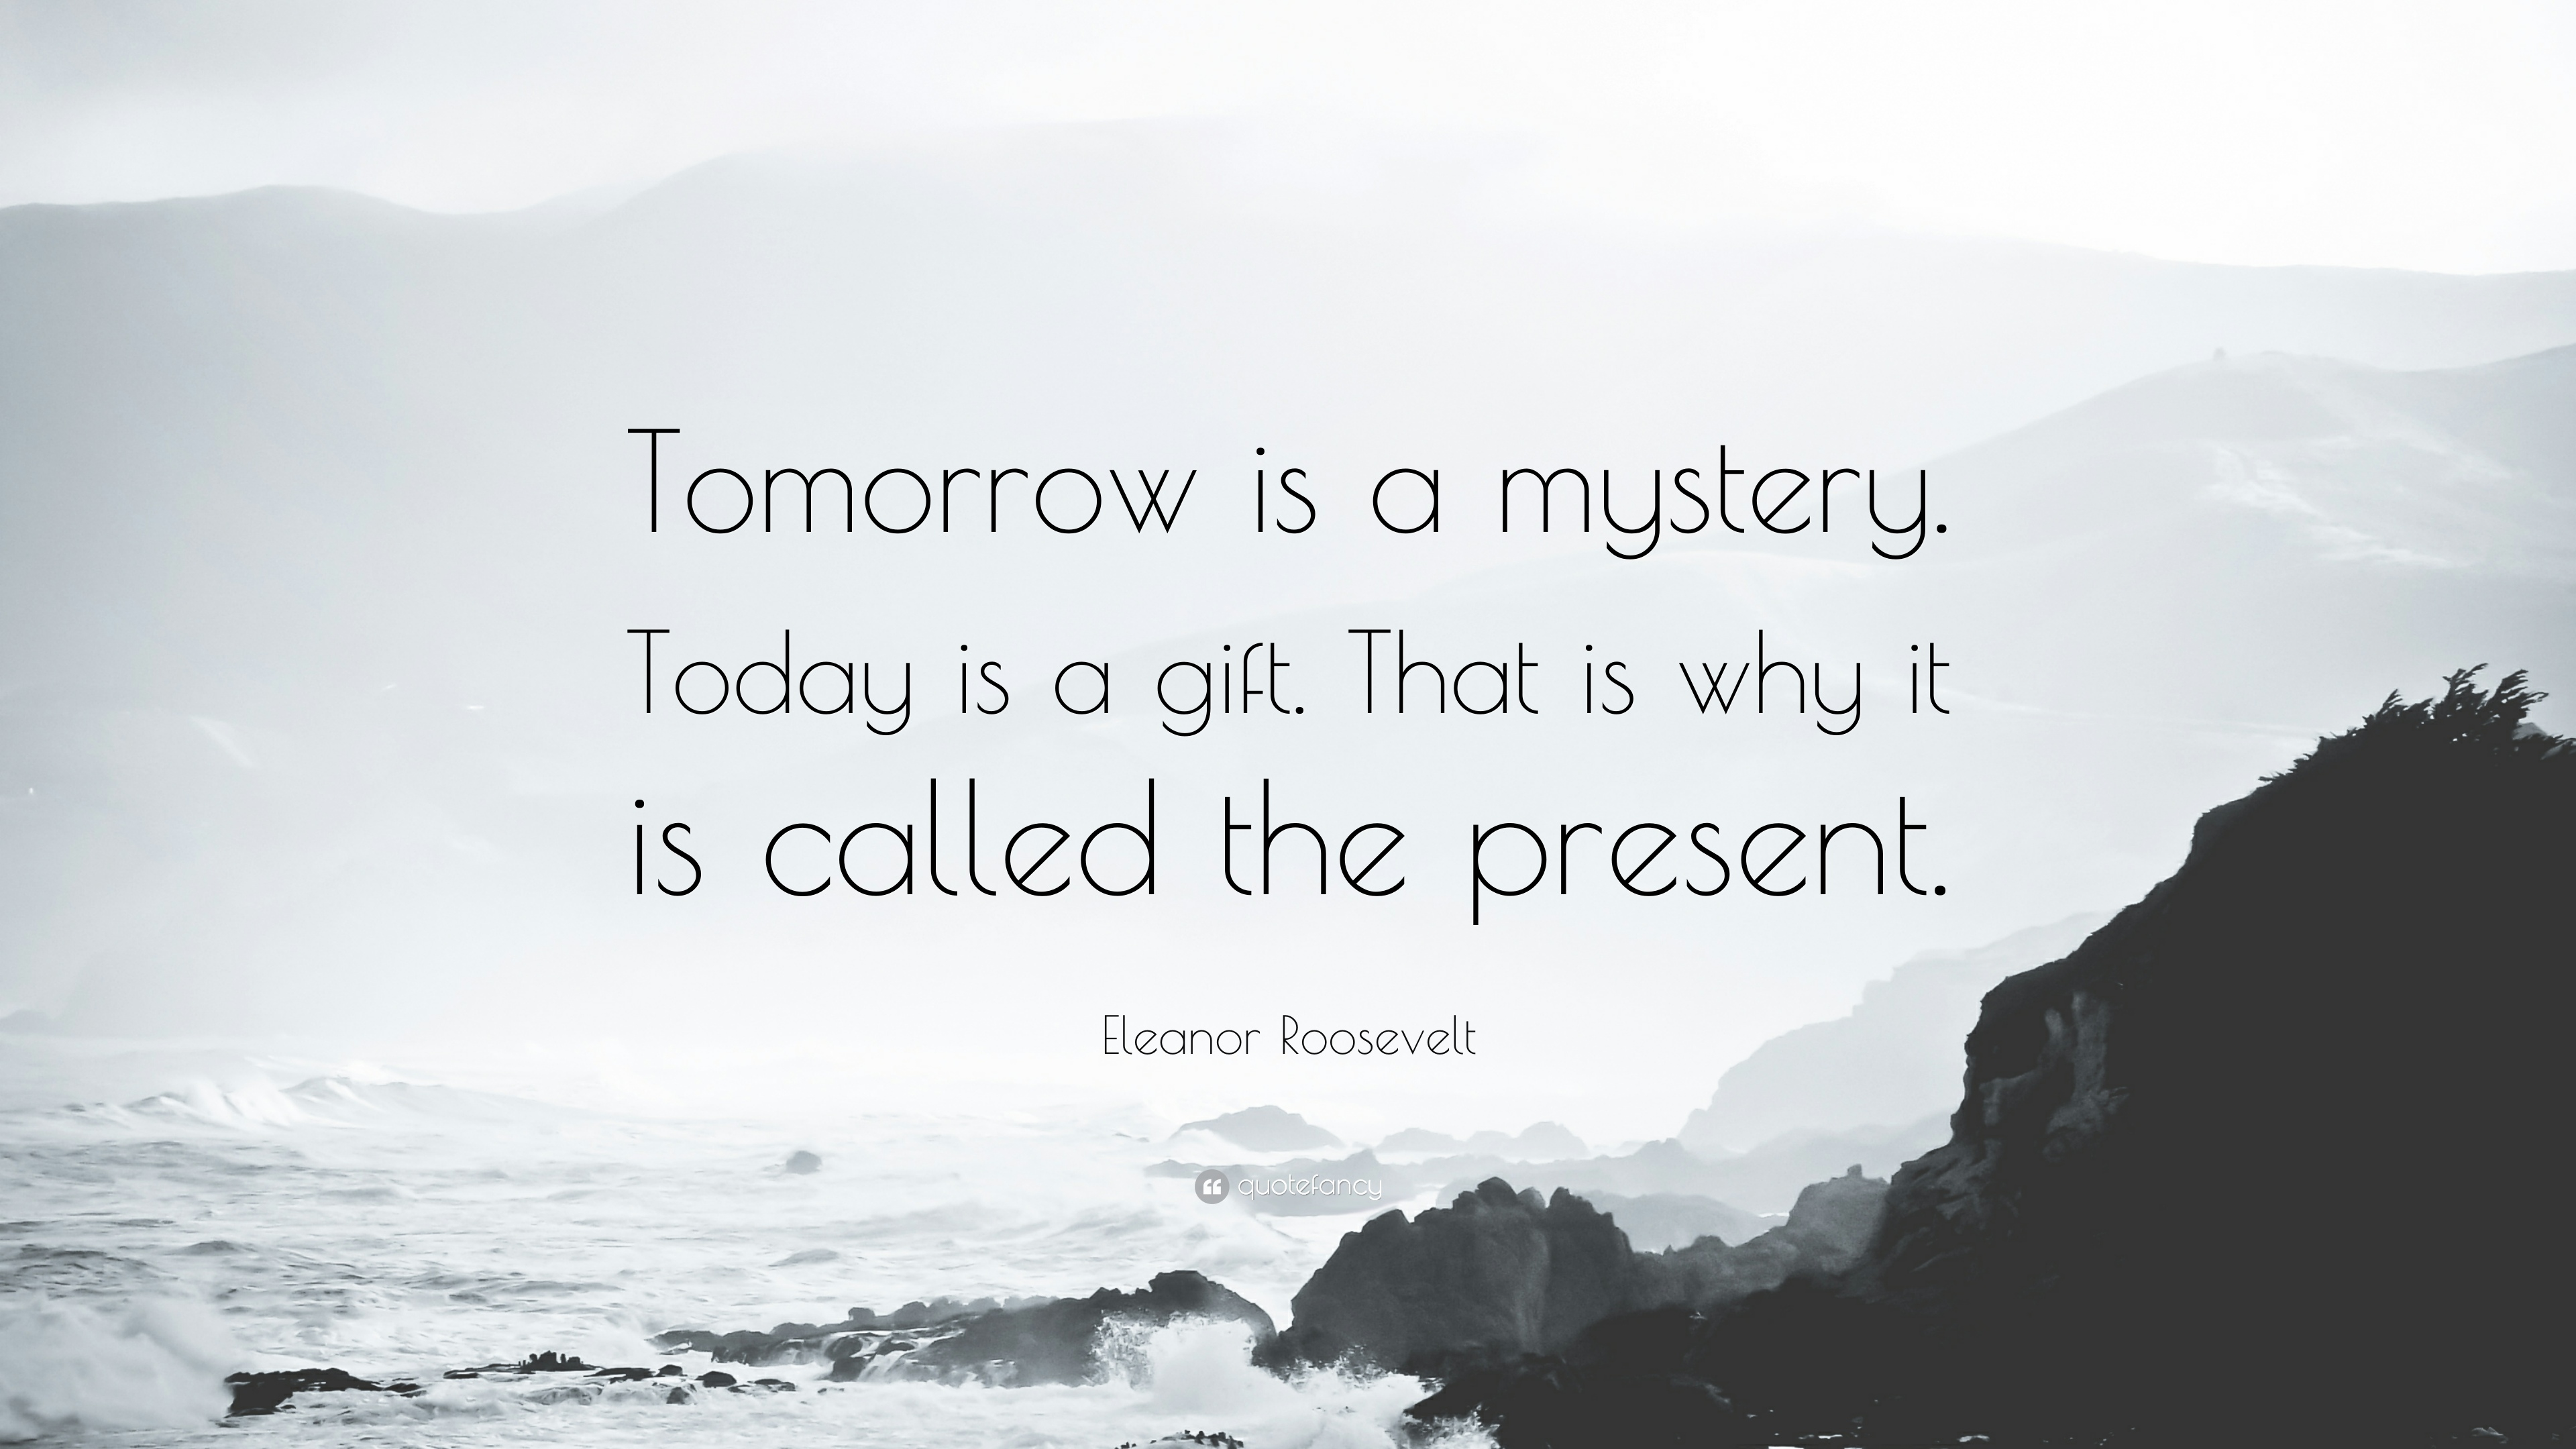 Eleanor roosevelt quote tomorrow is a mystery today is a gift that